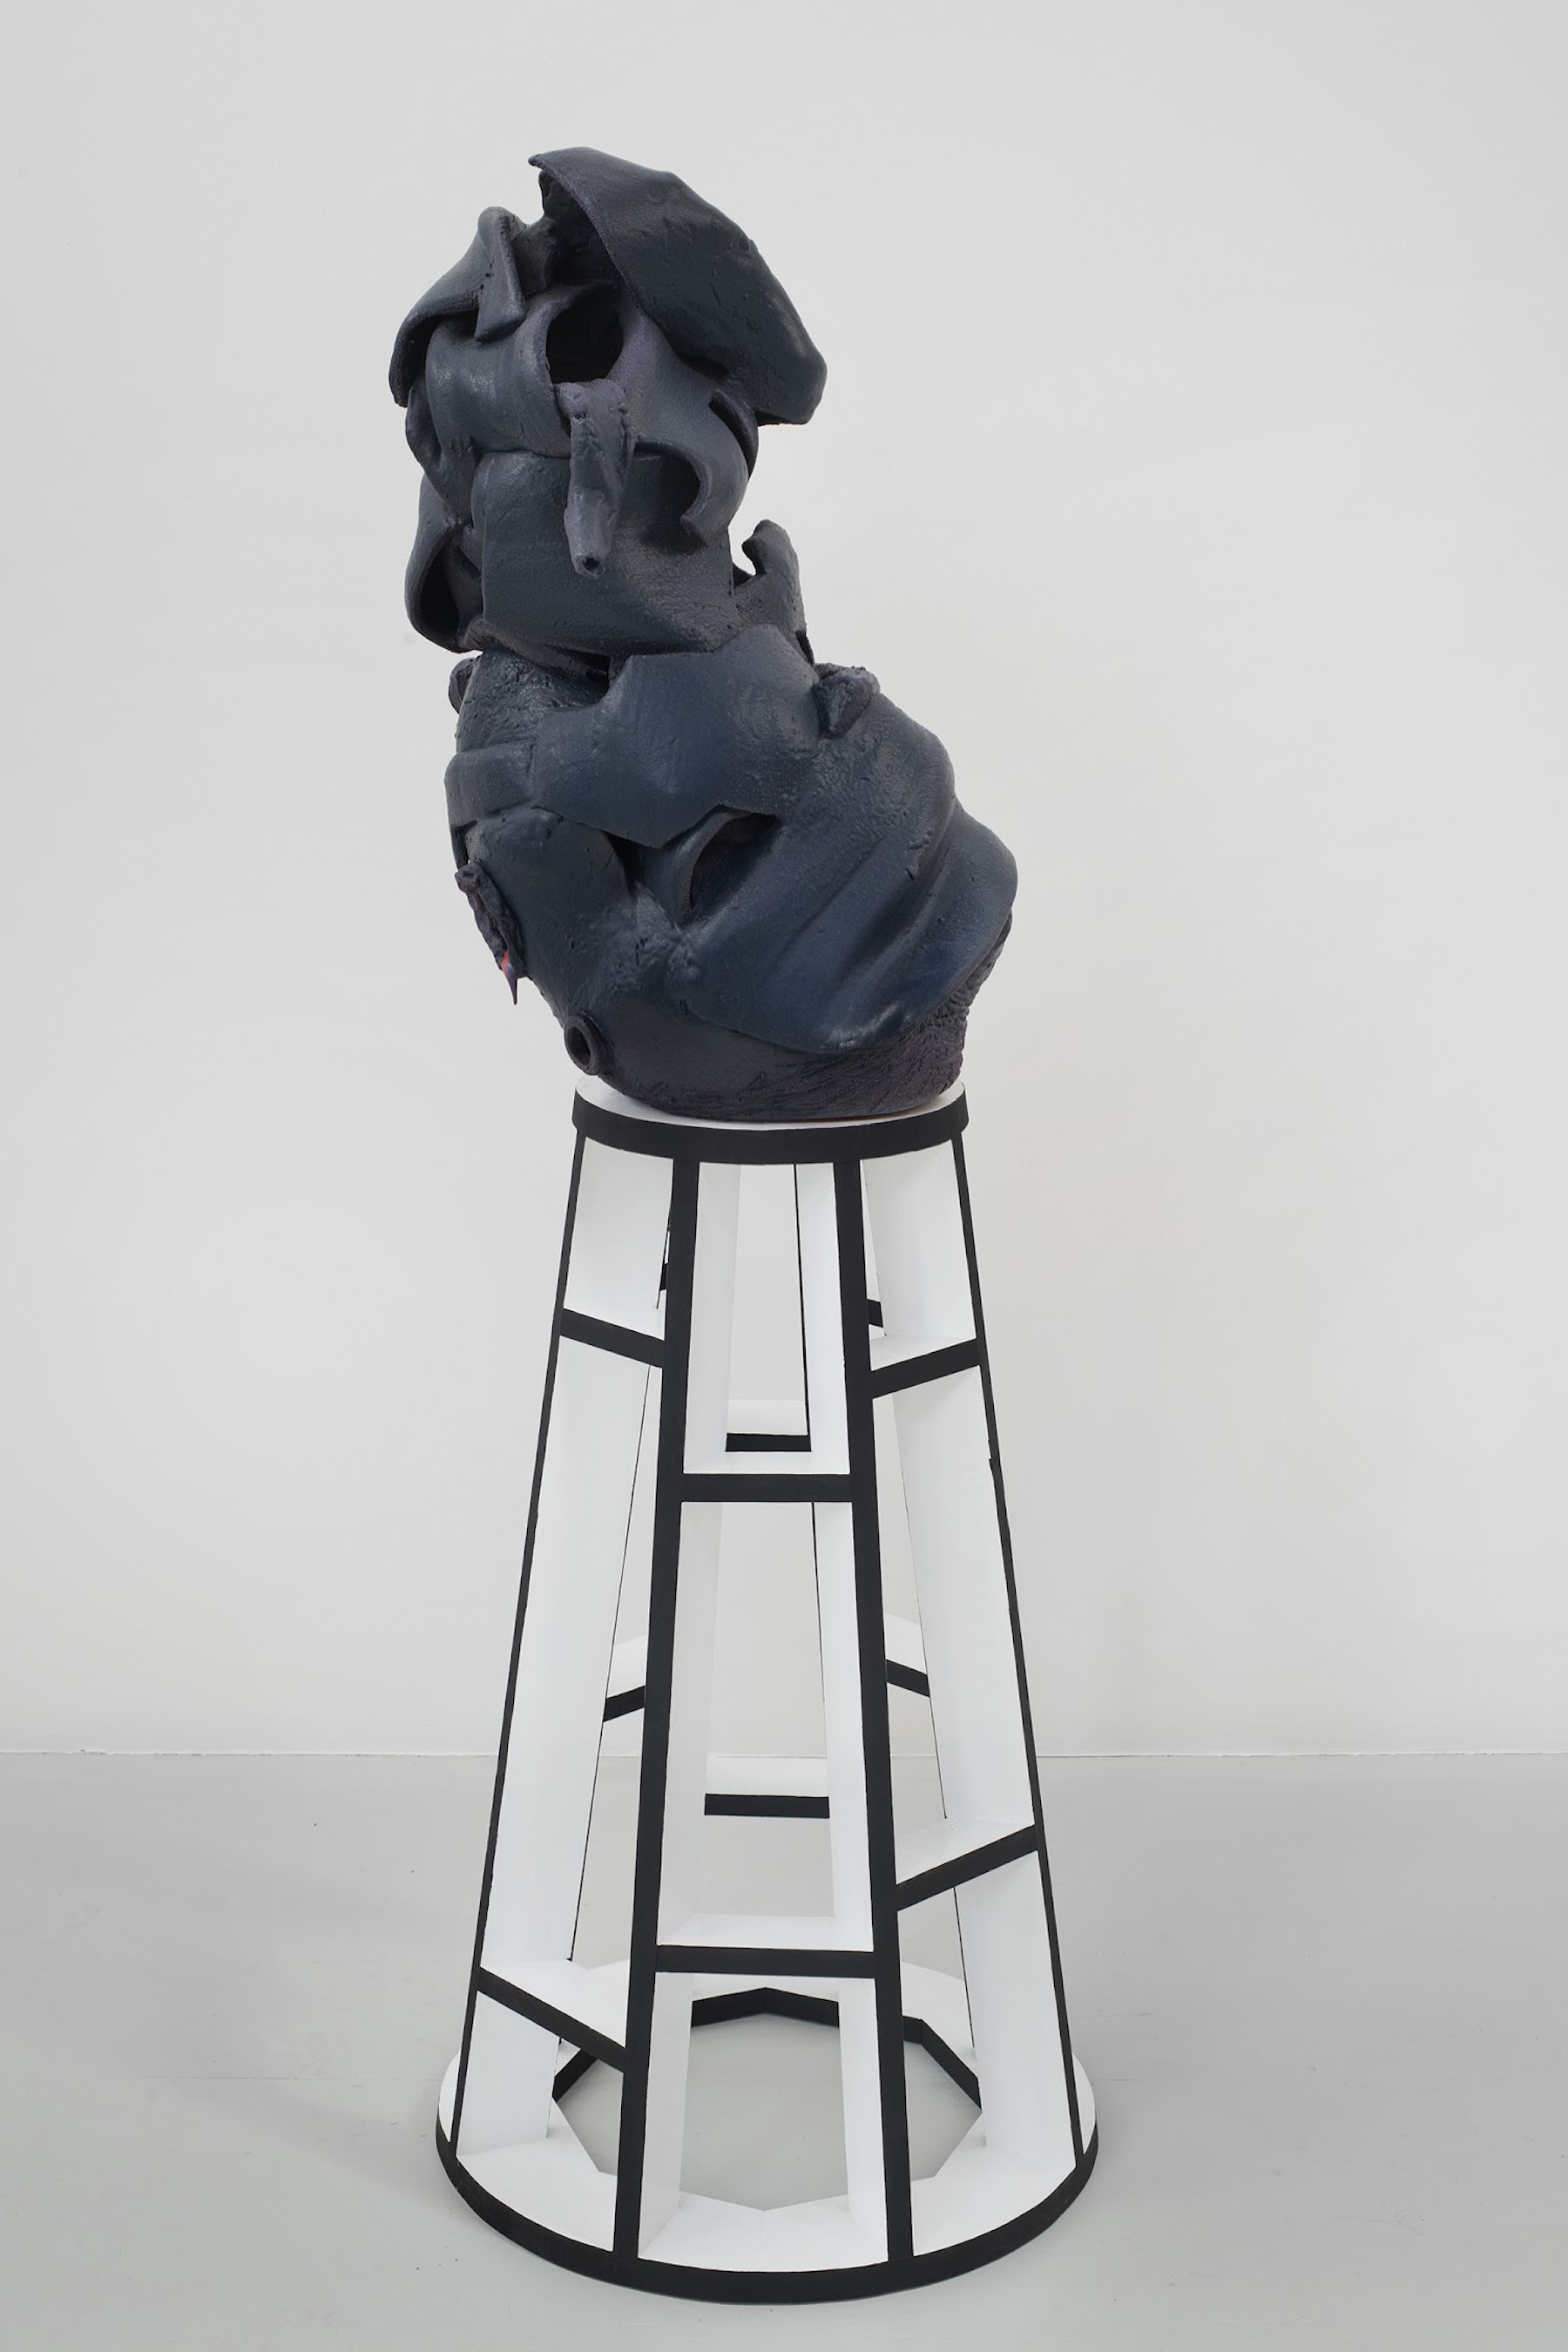 "Arlene Shechet ""Seeing in the Dark,"" 2019 Glazed ceramic, painted hard wood 60 x 21 x 21"" [HxWxD] (152.4 x 53.34 x 53.34 cm) Inventory #SHE131 Courtesy of the artist and Vielmetter Los Angeles. © Arlene Shechet Photo credit: Phoebe d'Heurle"